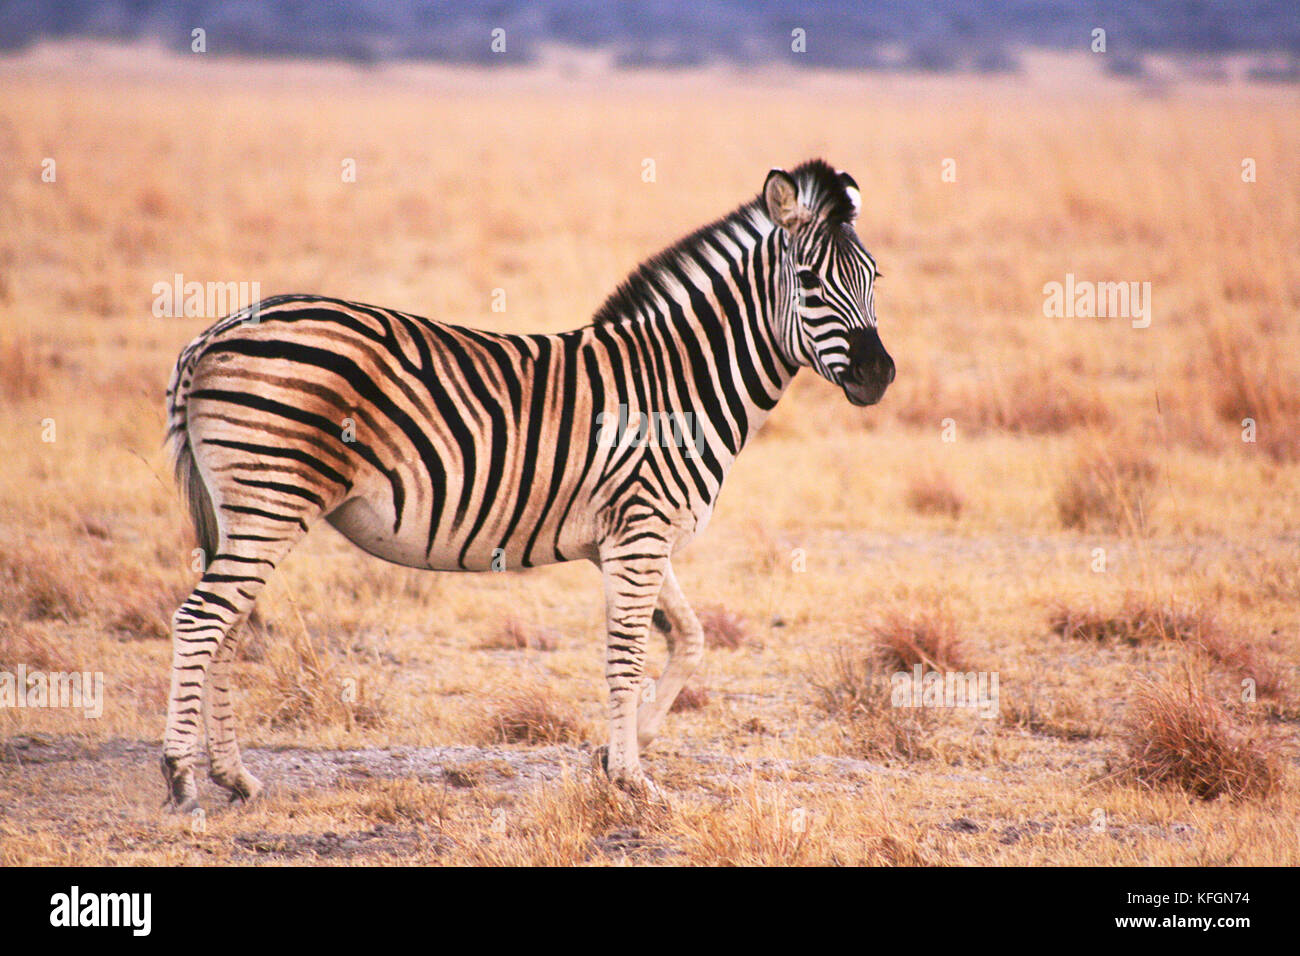 Lone Plains Zebra (Equus burchelli) on a game reserve in the early morning near Serowe, Botswana - Stock Image